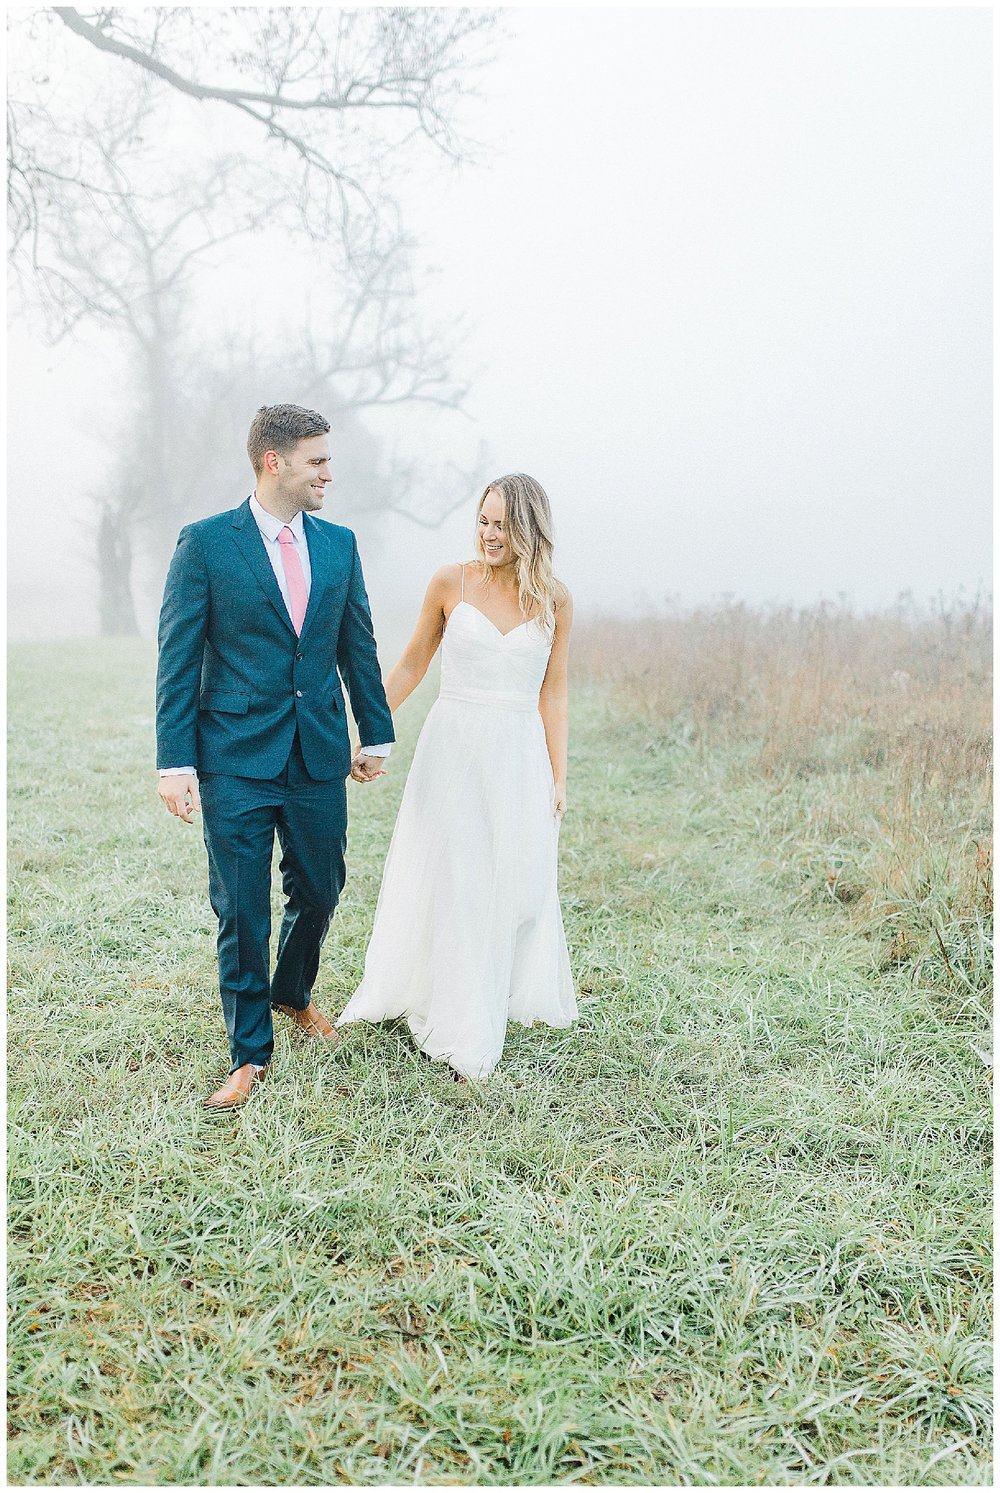 Emma Rose Company recently got to travel all the way to Nashville to photograph the most beautiful post-wedding bride and groom portraits in the Great Smoky Mountains with a gorgeous couple! Nashville wedding inspiration at it's finest._0012.jpg